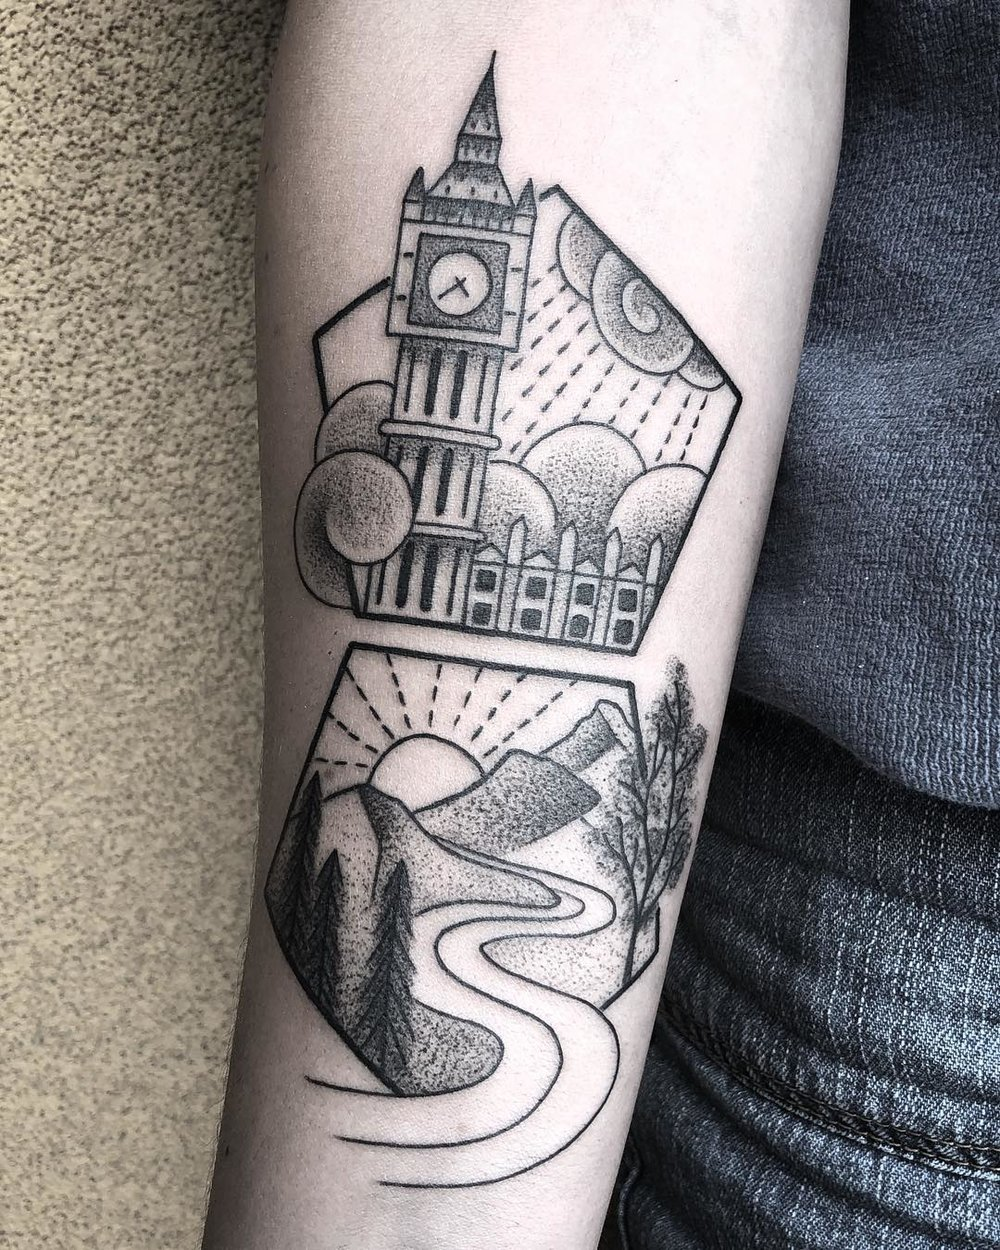 cody-philpott-tattoo-blacktattoo-kelowna-tattoo-lakecountry.jpg